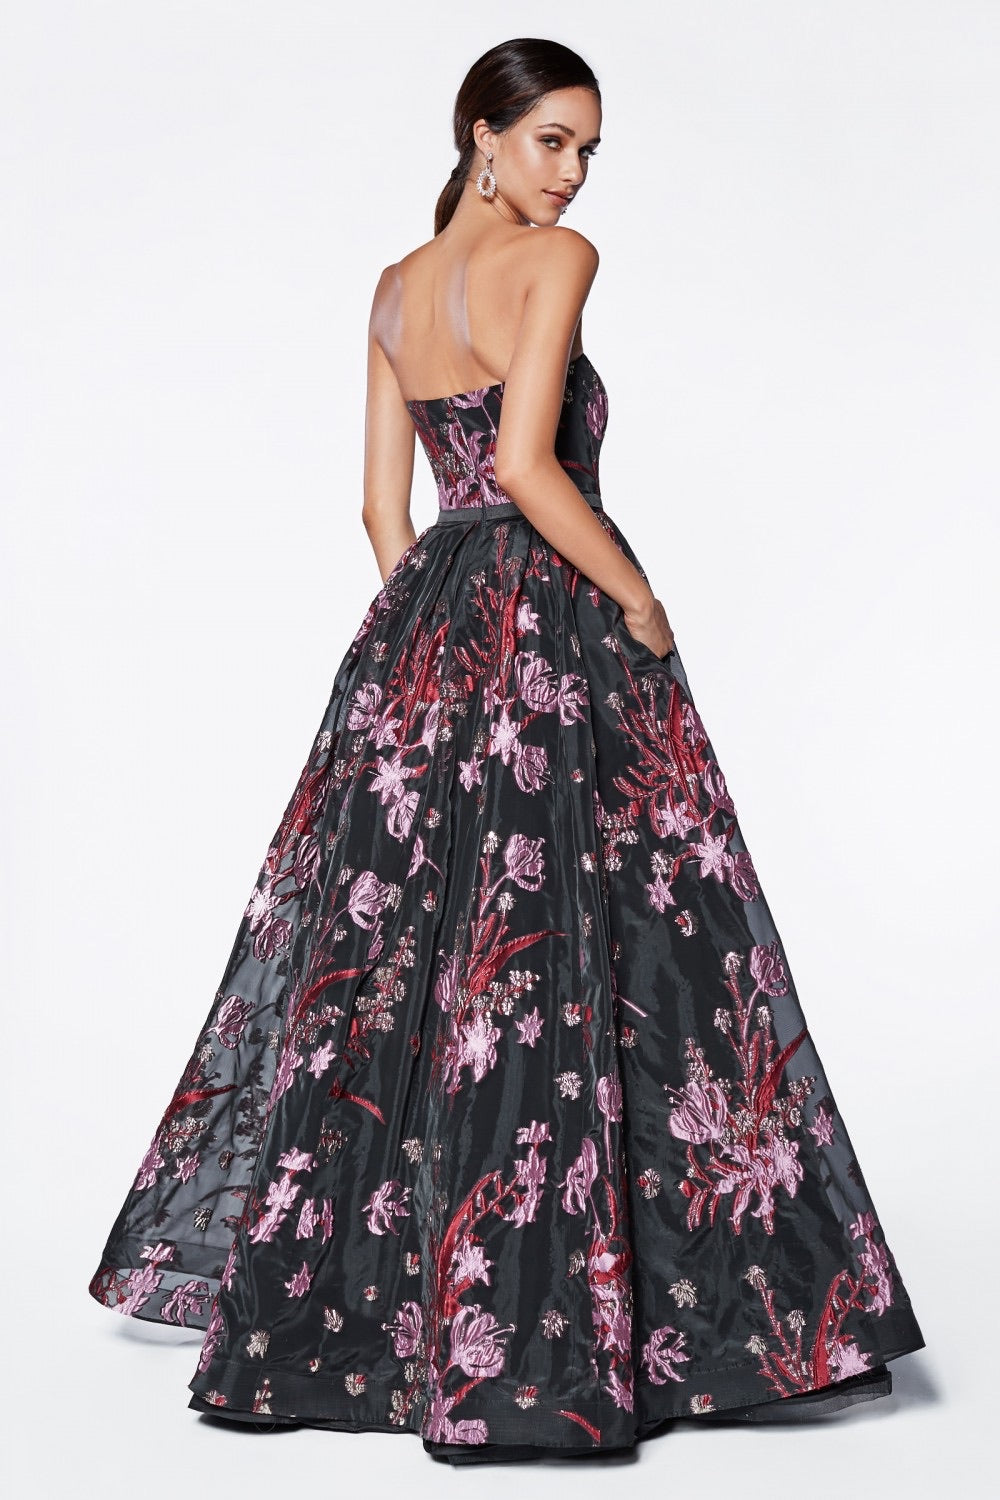 CD Jovani Lost in Dark Floral Gown